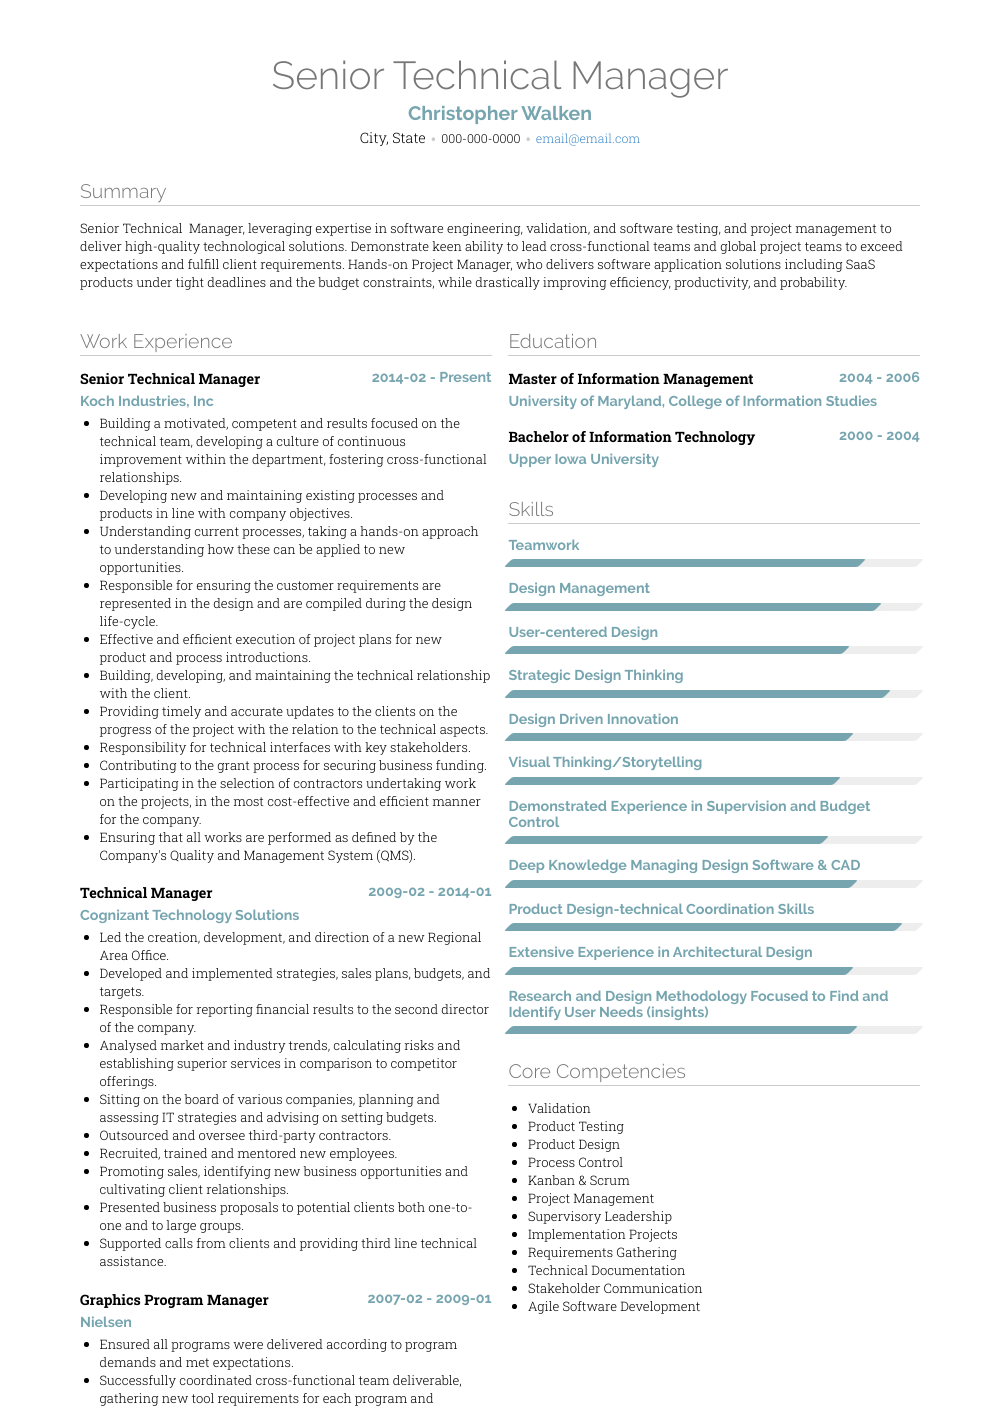 Technical Manager Resume Samples And Templates Visualcv